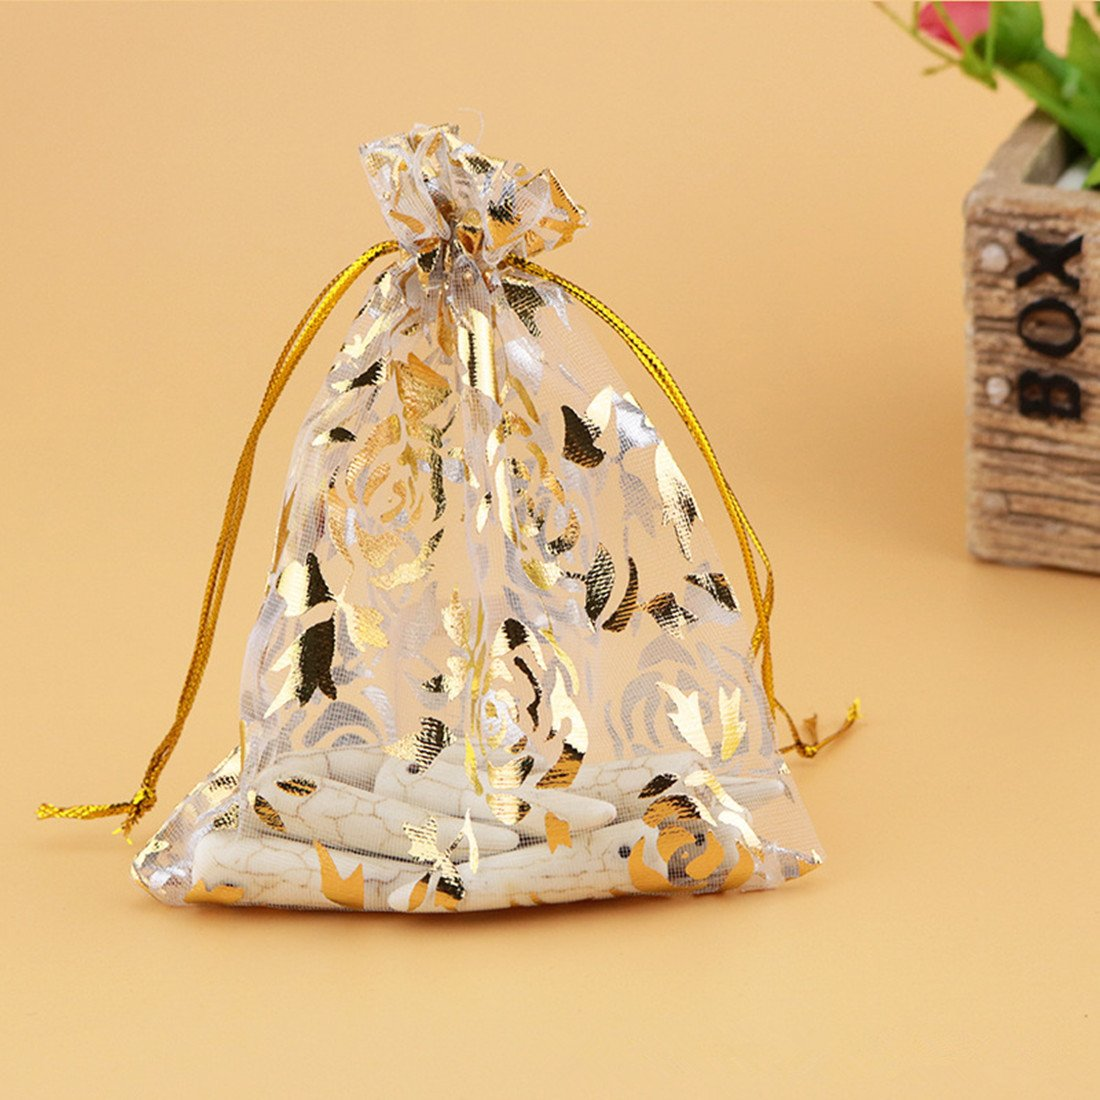 Zhiheng 100pcs Organza Wedding Party Gift Bags Rose Pattern Sheer Drawstring Pouches Jewelry Gift Bags Christmas Party Gift Favor Bags gold, 6x9